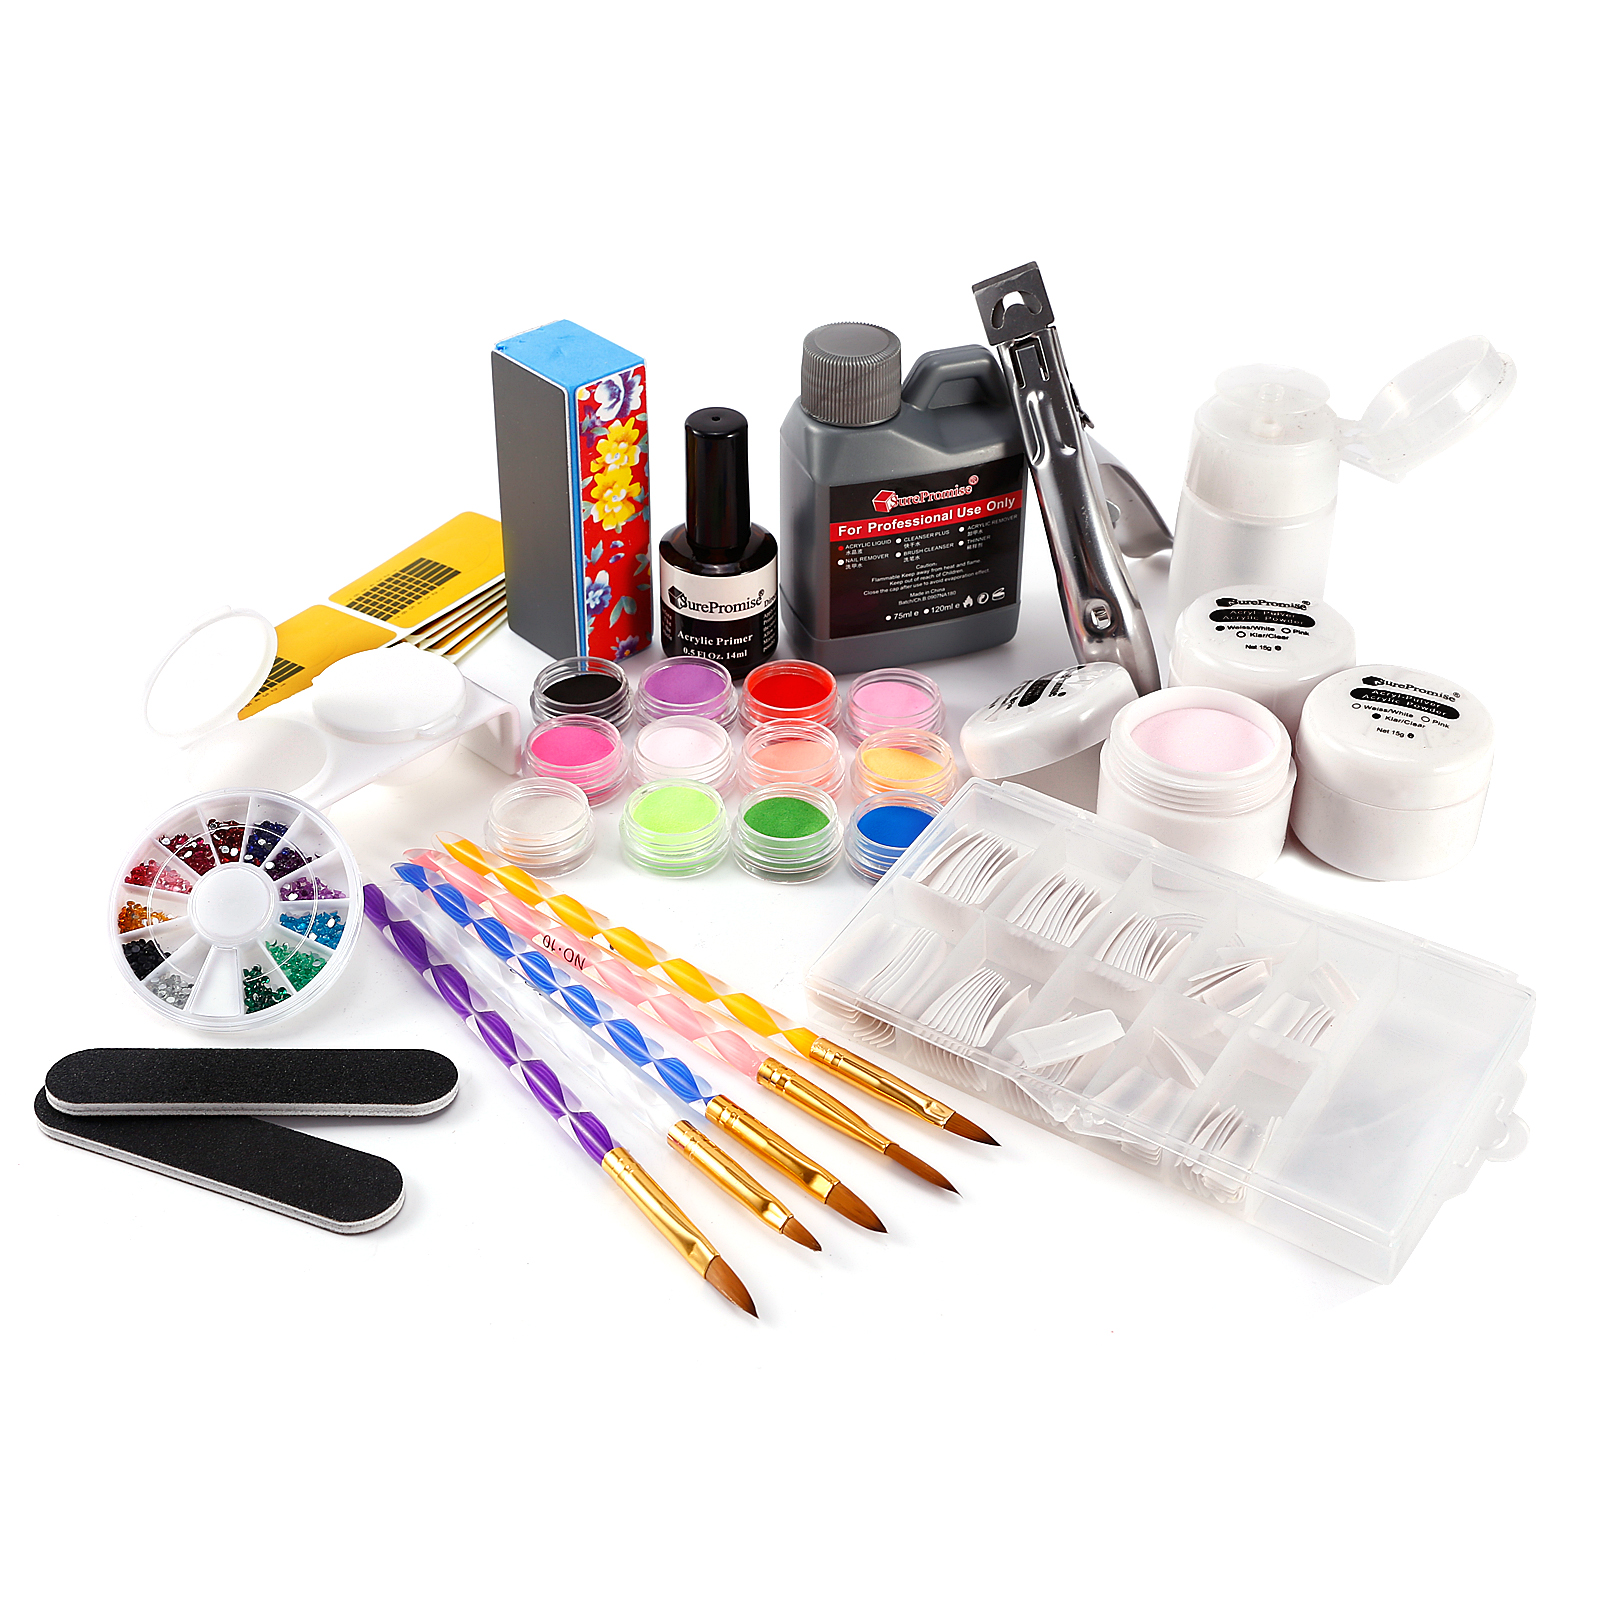 acryl starter set uv set pulver liquid nageltips stra stein glitter pinsel feile ebay. Black Bedroom Furniture Sets. Home Design Ideas